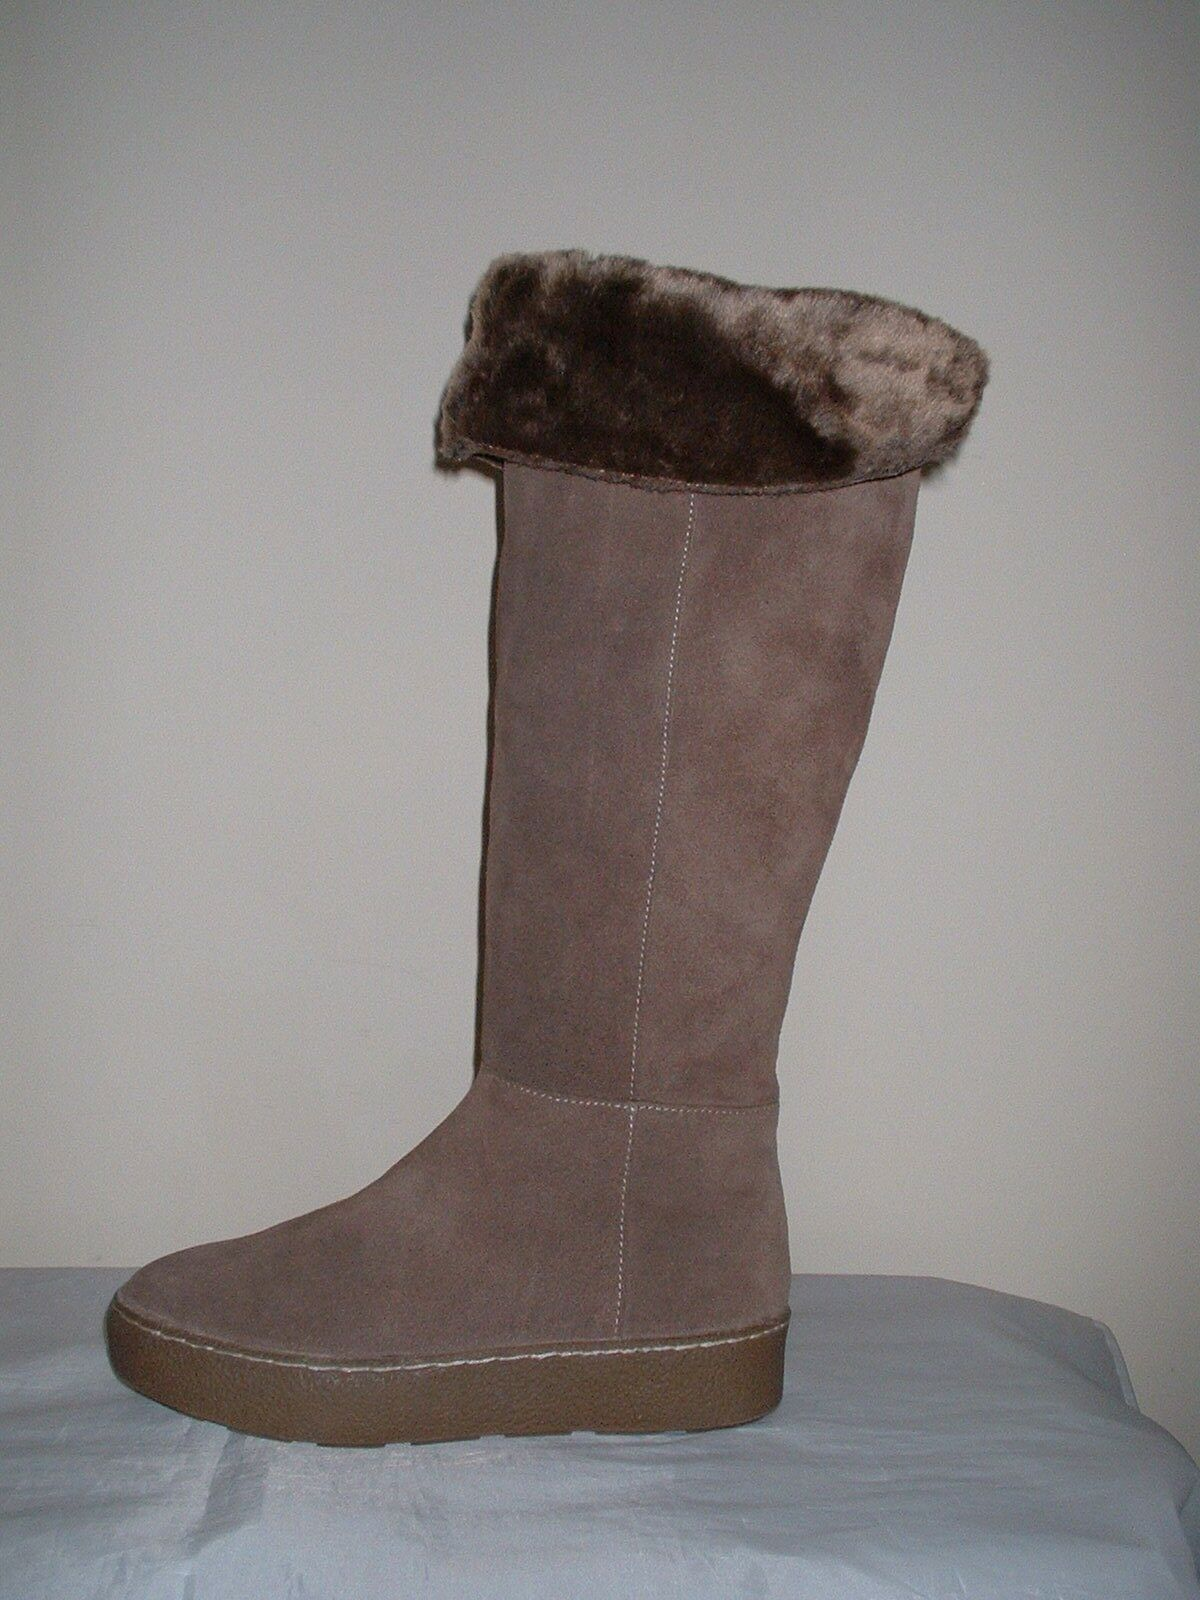 BROWN GENUINE SUEDE LEATHER FAUX FUR LINED KNEE HIGH 6/39 FLAT ZIP Stiefel SIZE 6/39 HIGH 3c164d